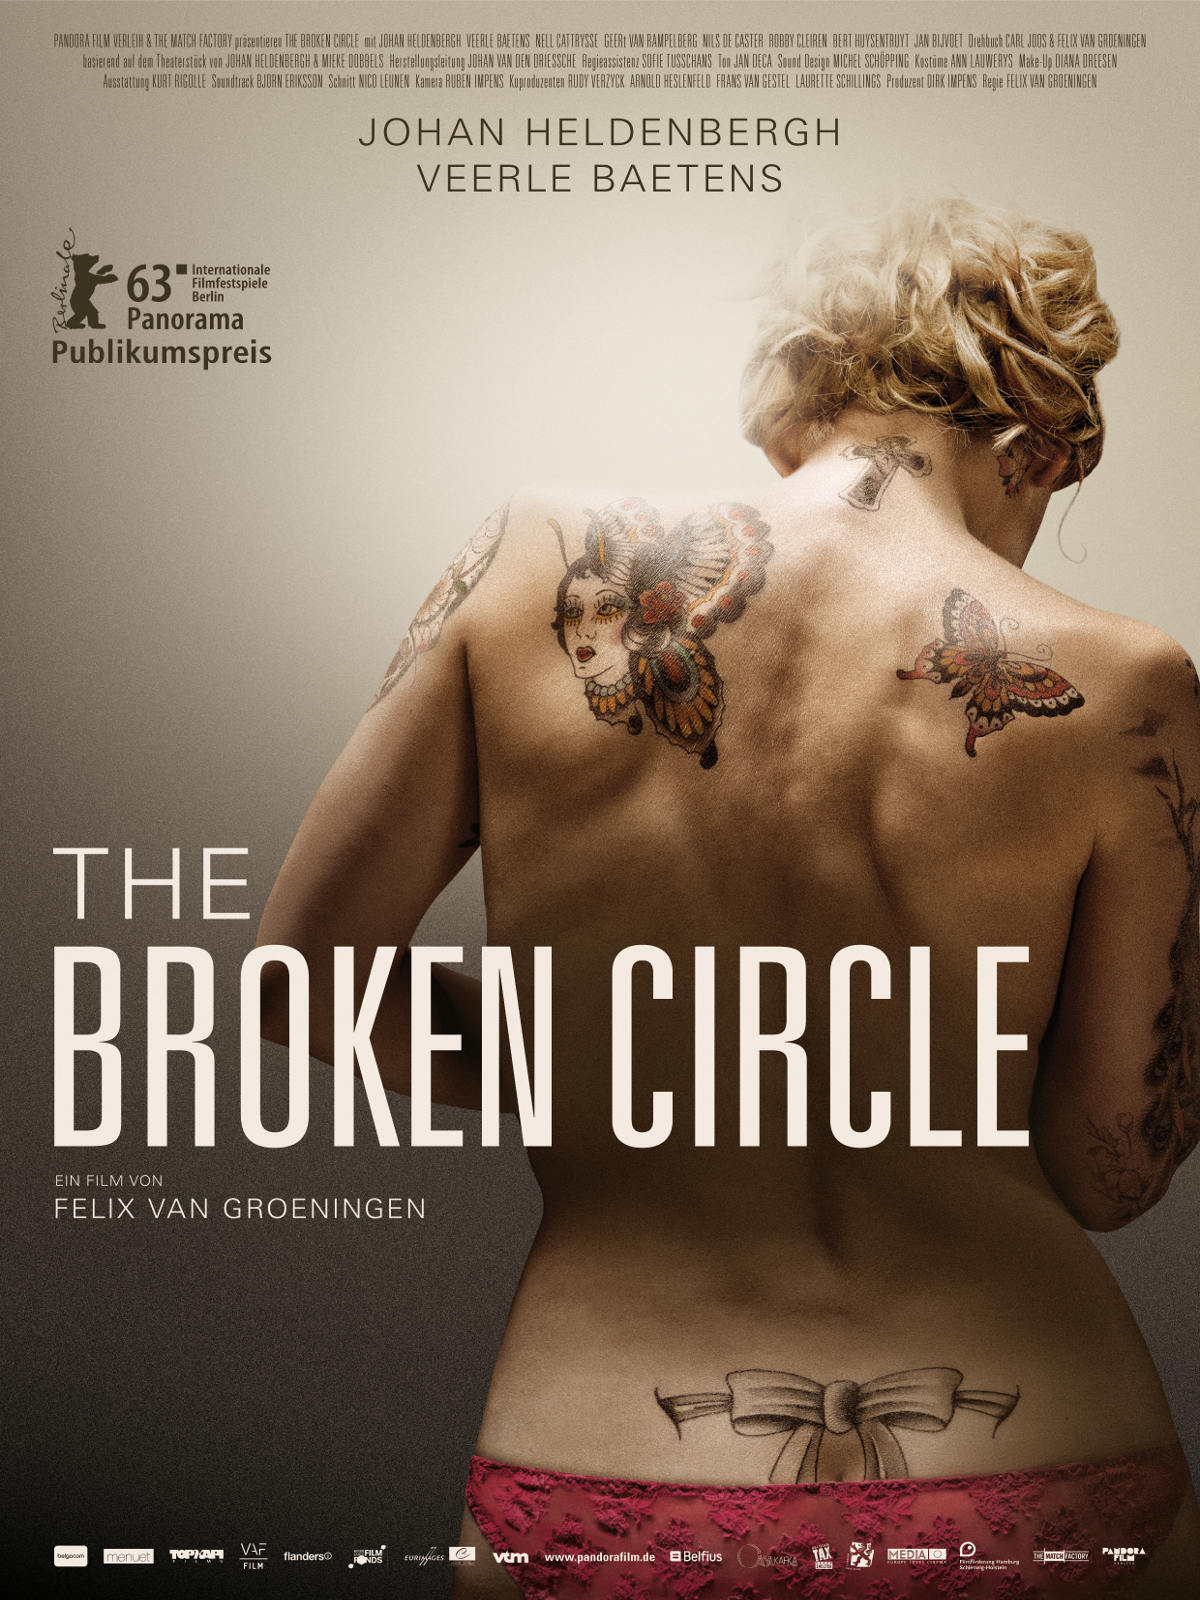 The Broken Circle - Film 2012 - FILMSTARTS.de